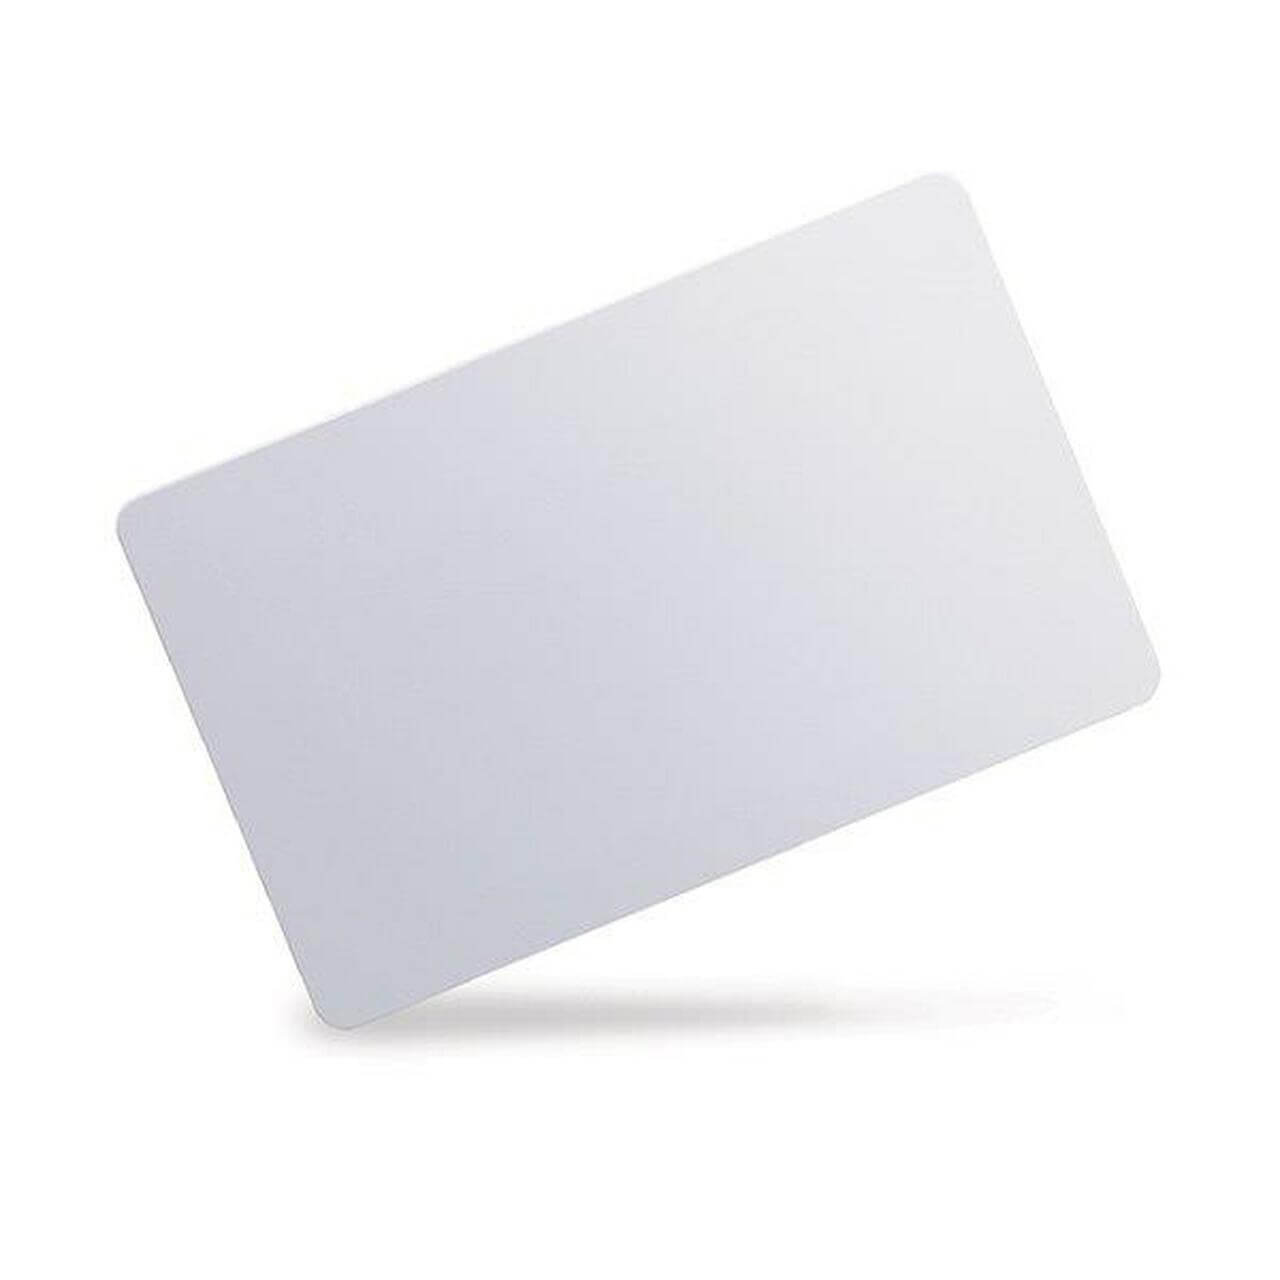 Thickness Of UHF RFID Cards